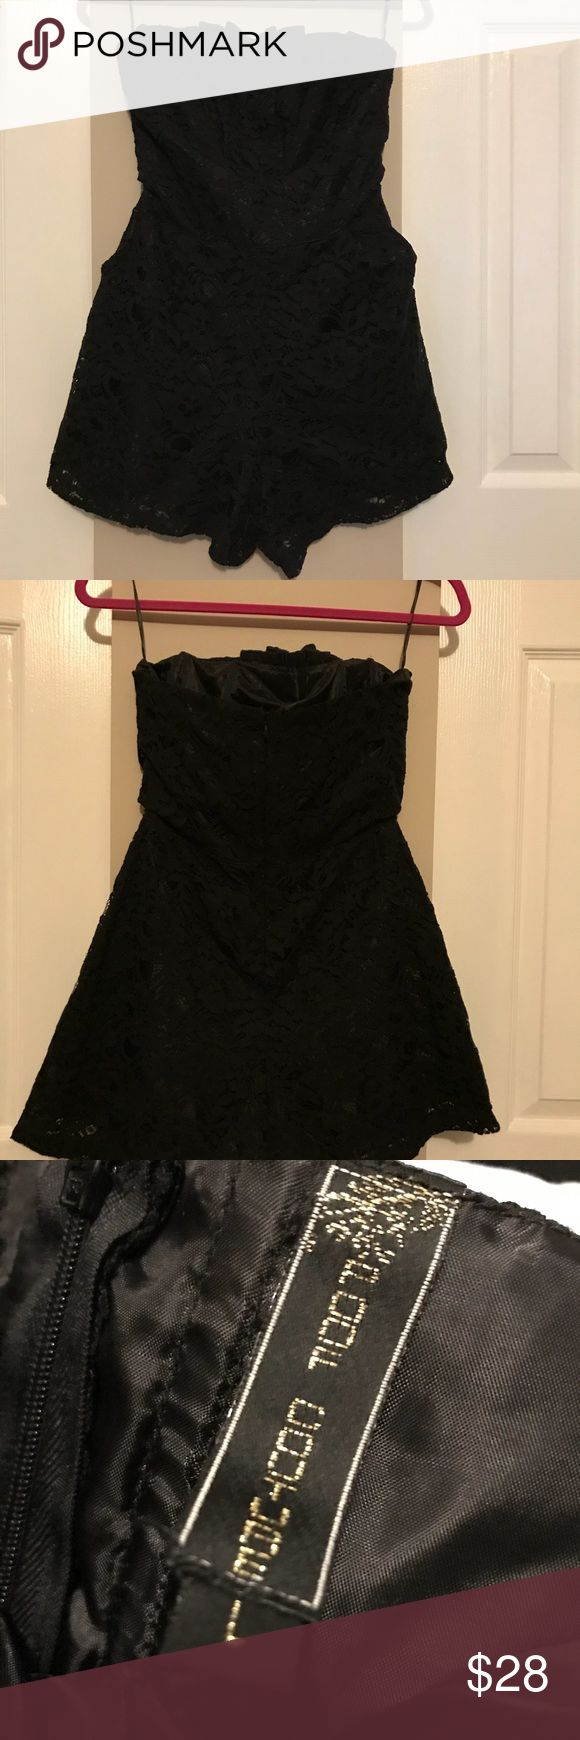 Black lace shorts jumper dress Super cute, shorts jumper dress with side pockets. Perfect for a night out! It is a large but for reference I'm petite 116 lbs and it fits perfectly Dresses Mini